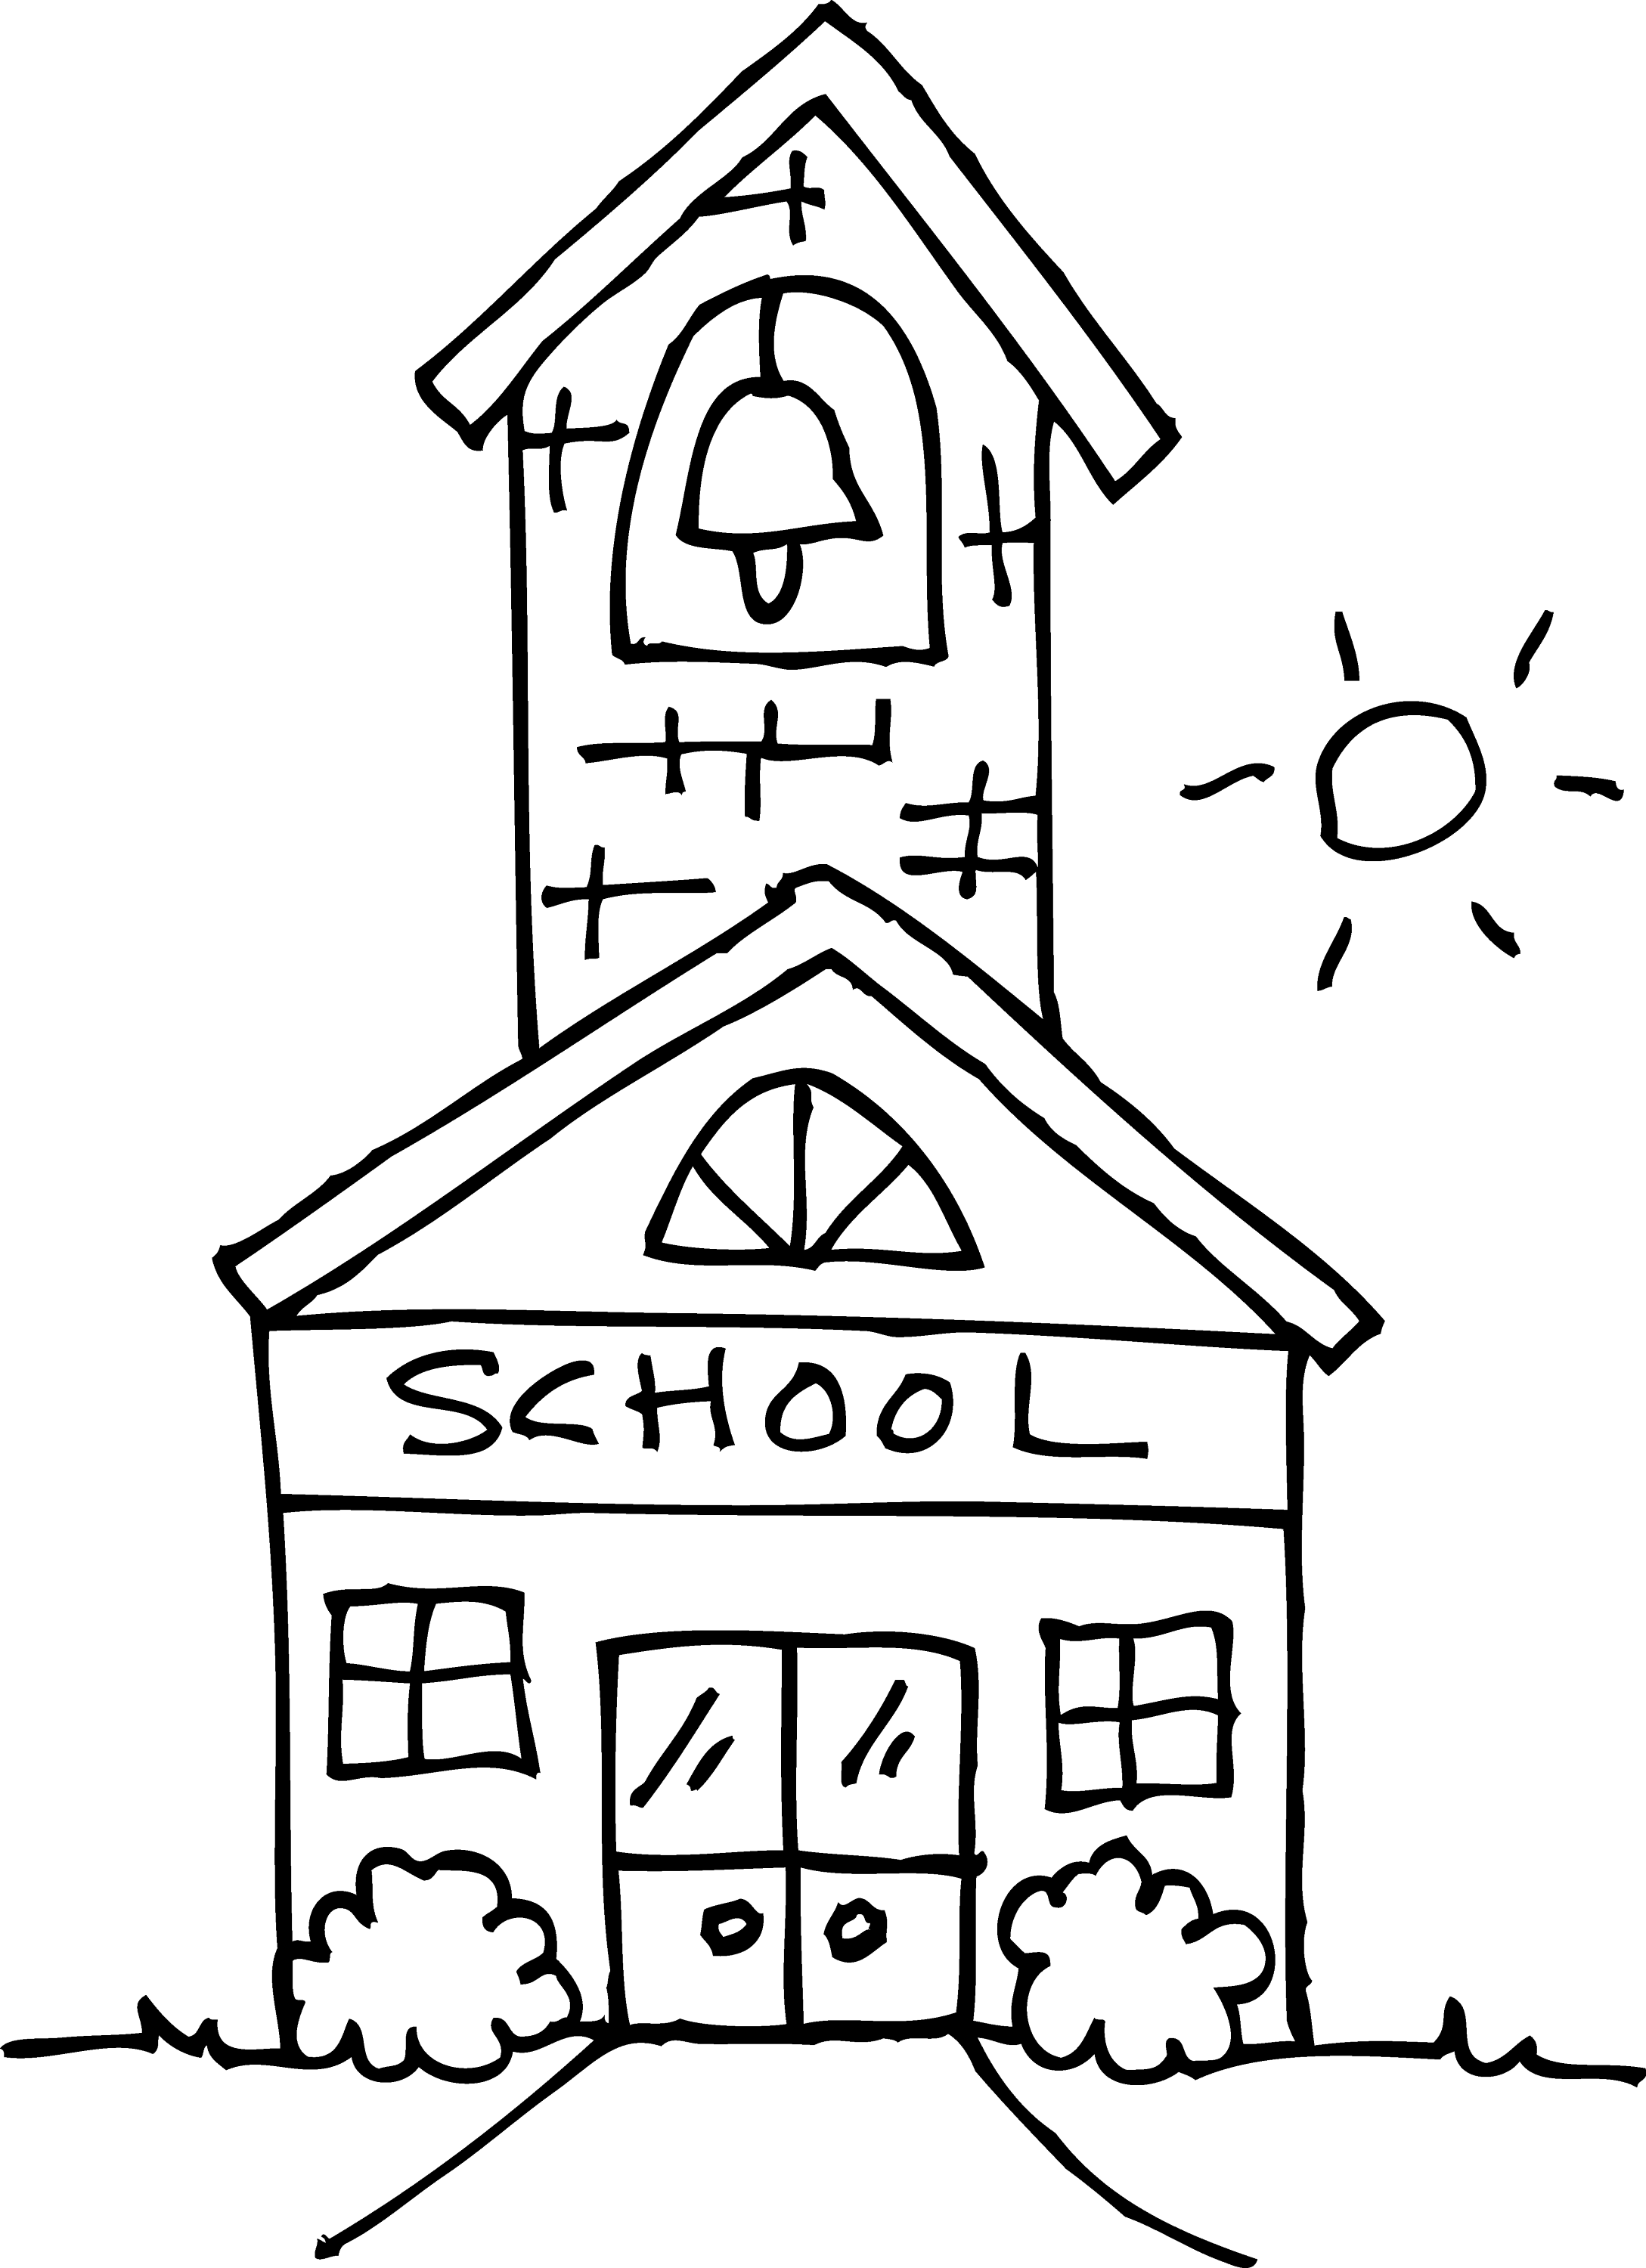 school house coloring sheet cool any school house coloring page house colouring coloring sheet school house